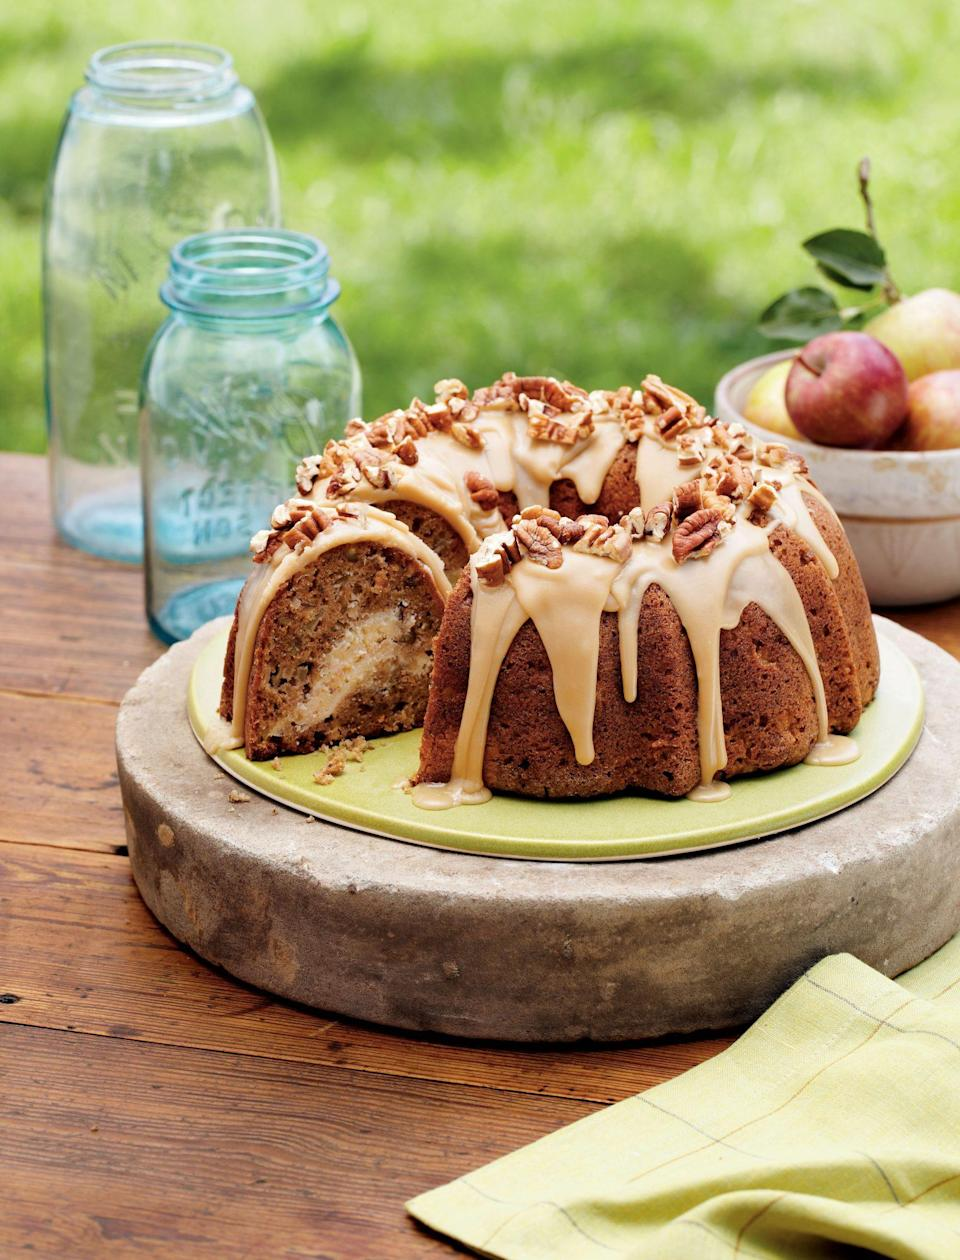 """<p><strong>Recipe: <a href=""""https://www.southernliving.com/syndication/apple-cream-cheese-bundt-cake"""" rel=""""nofollow noopener"""" target=""""_blank"""" data-ylk=""""slk:Apple-Cream Cheese Bundt Cake"""" class=""""link rapid-noclick-resp"""">Apple-Cream Cheese Bundt Cake</a></strong></p> <p>Your guests will be floored by the dreamy cream cheese tunnel when you cut into this pretty fall Bundt.</p>"""